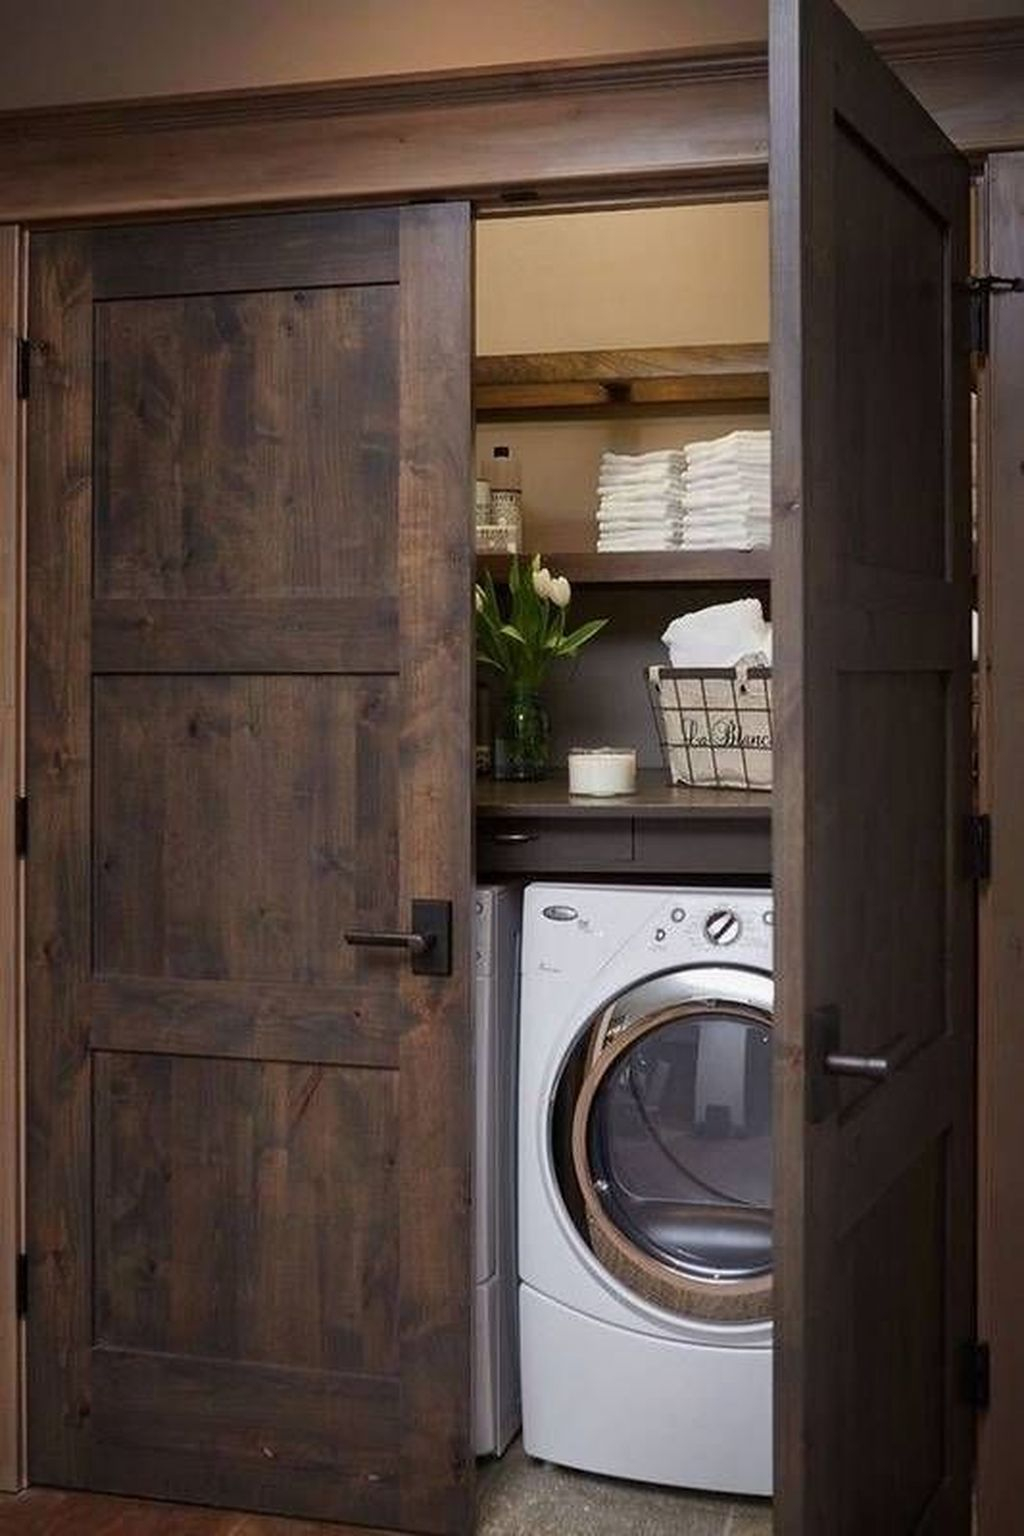 Best Small Functional Laundry Room Decoration Ideas That Looks Cool 36